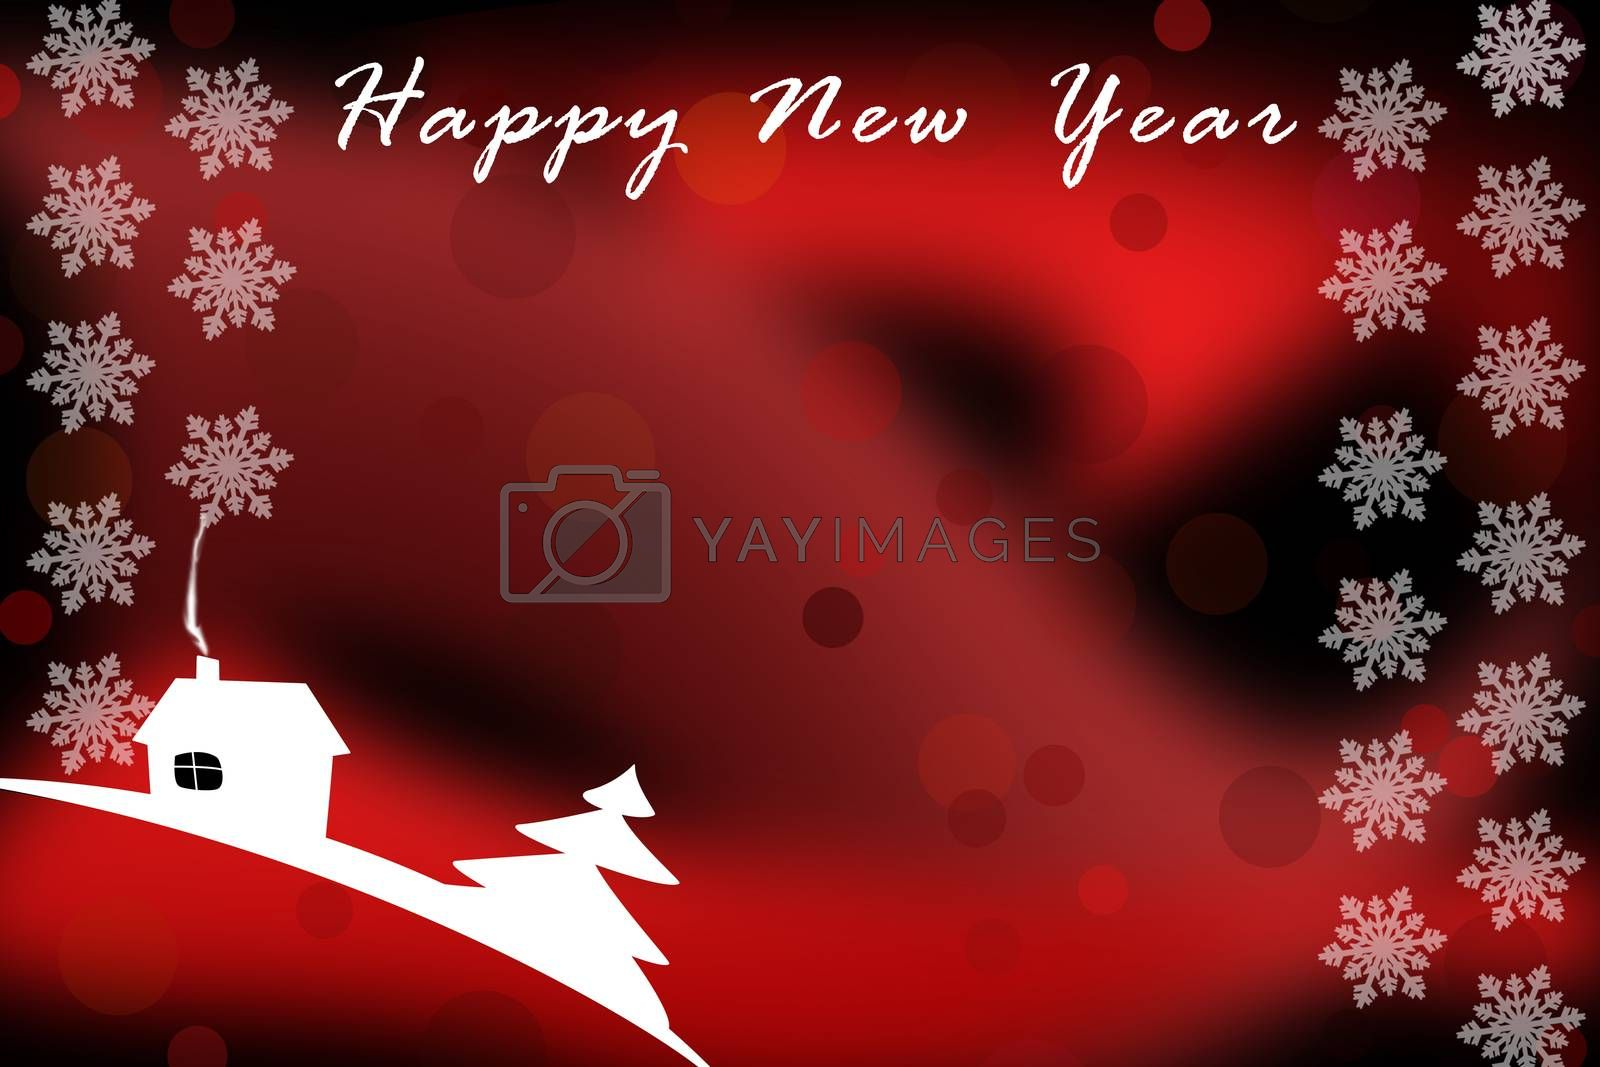 Illustration. New year greetings template on red background